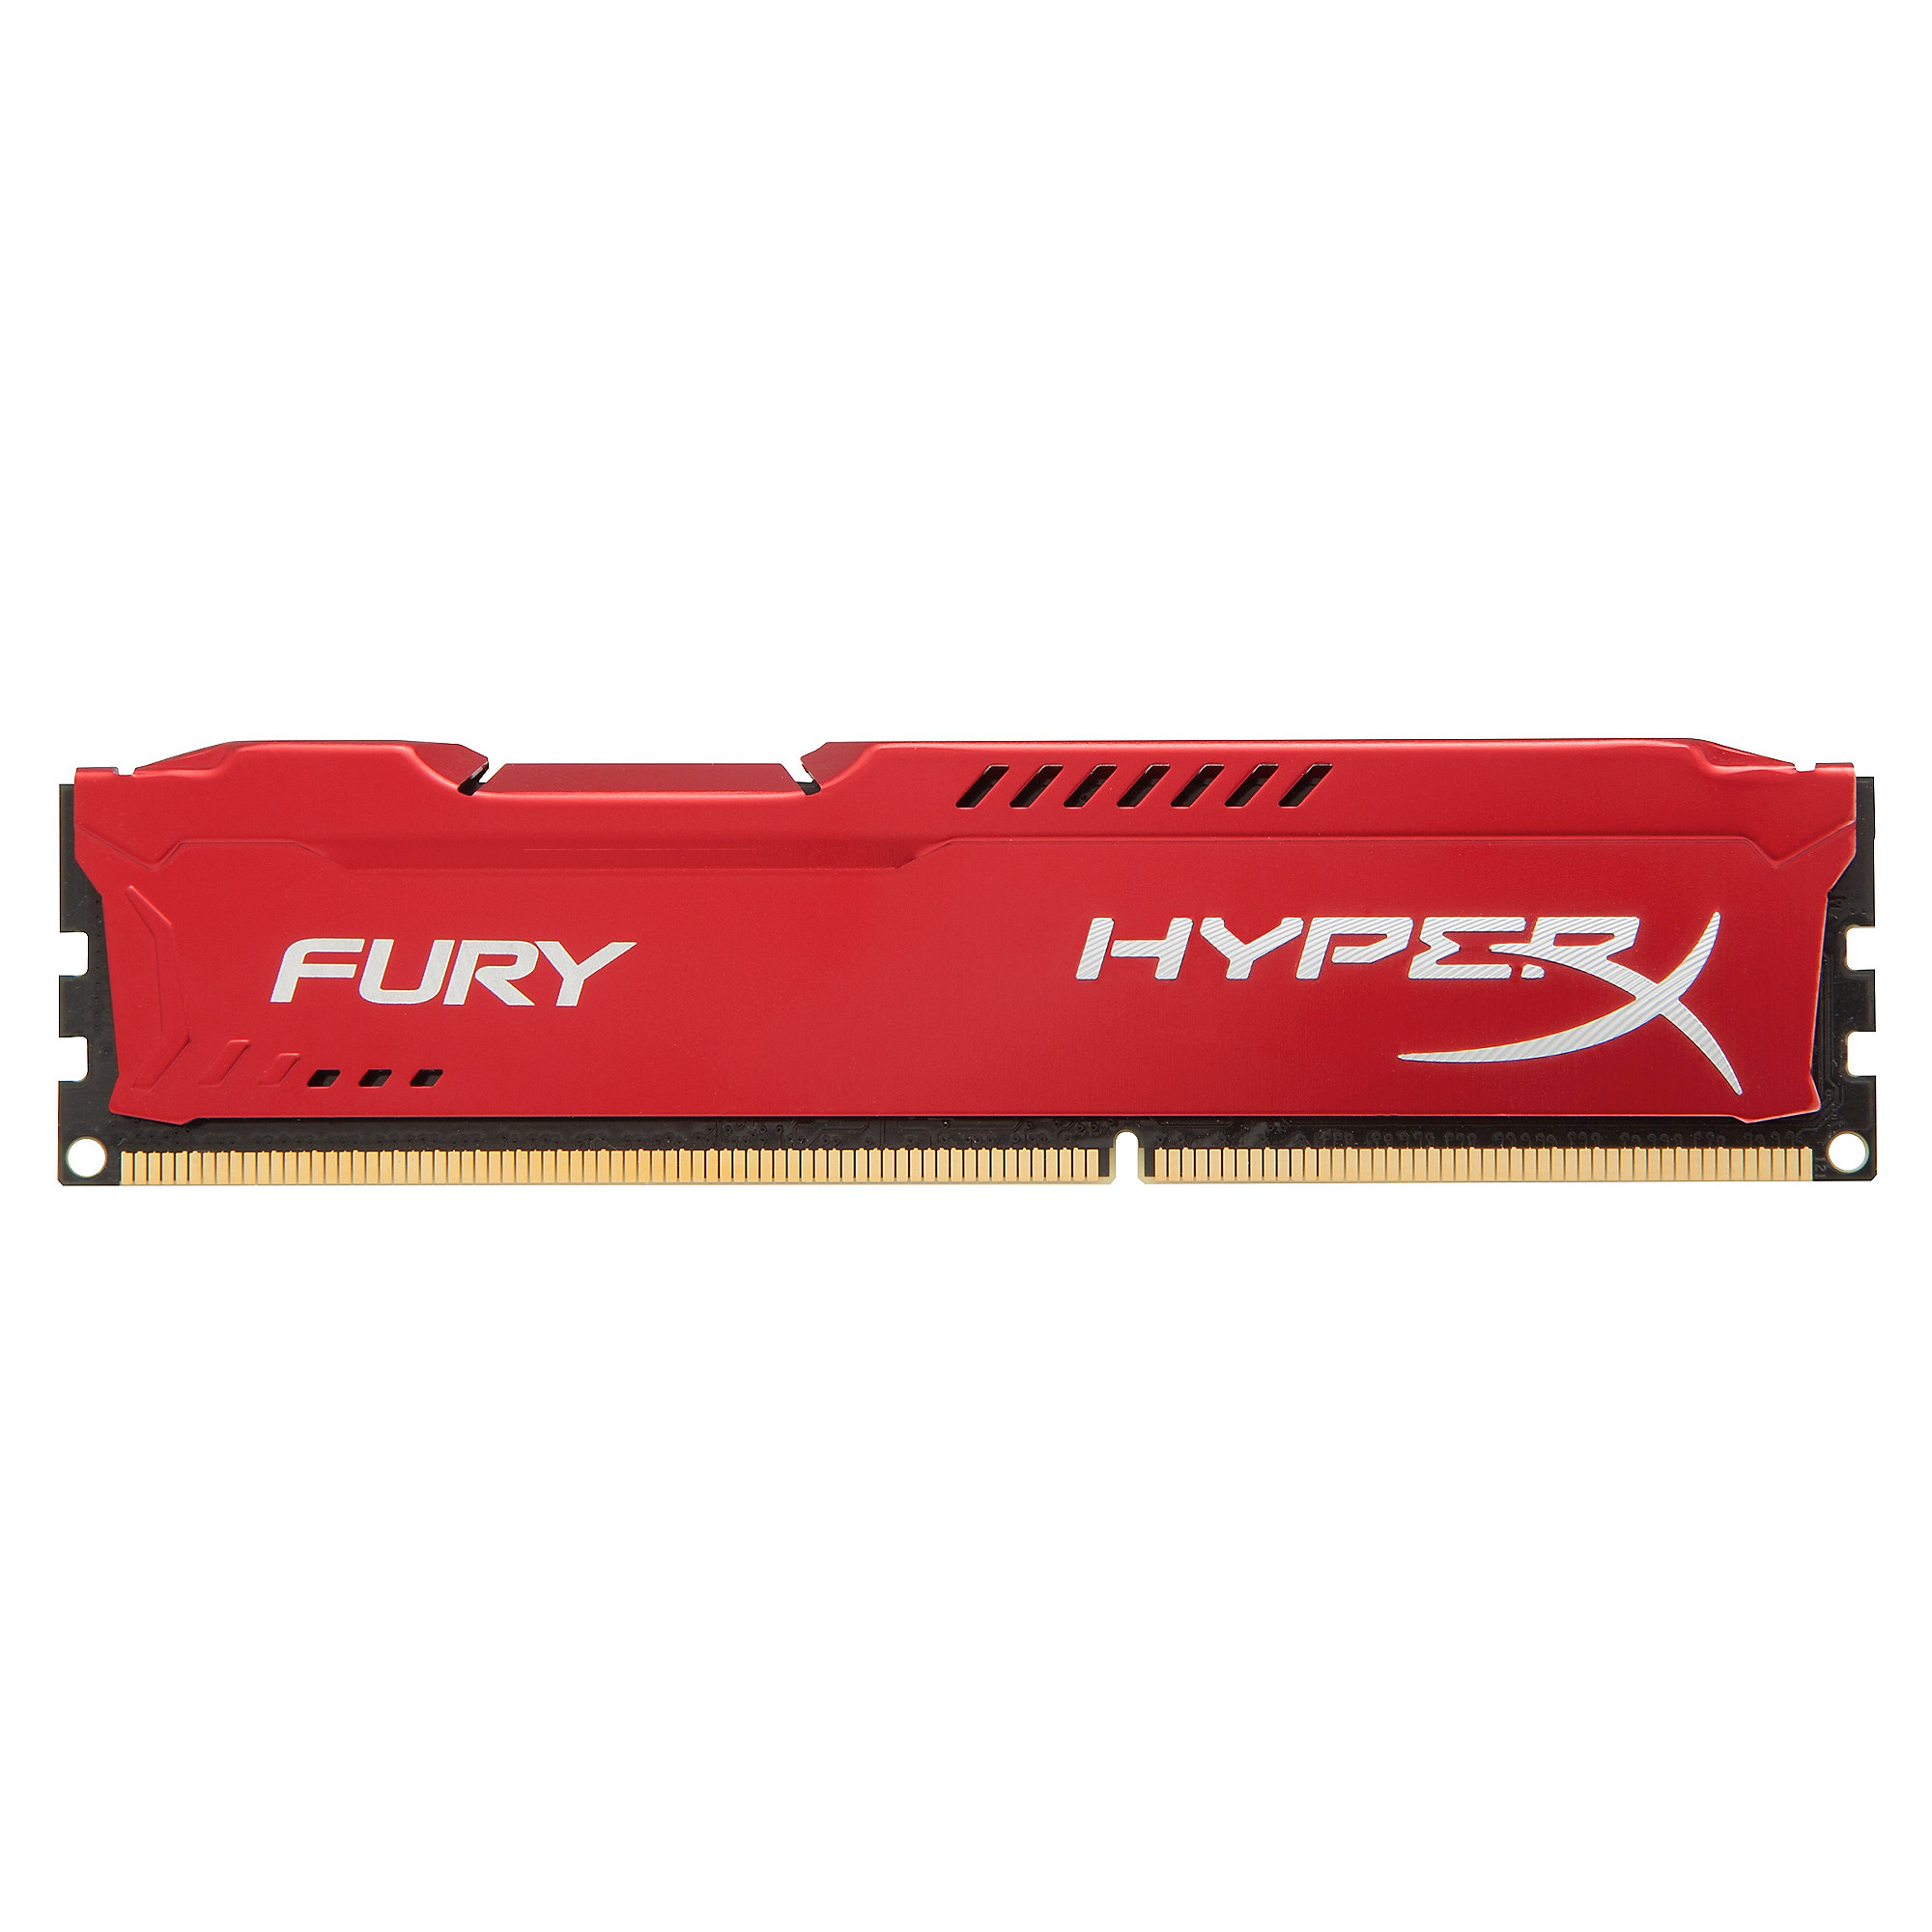 4GB Kingston HyperX Fury rot DDR3-1866 CL10 RAM